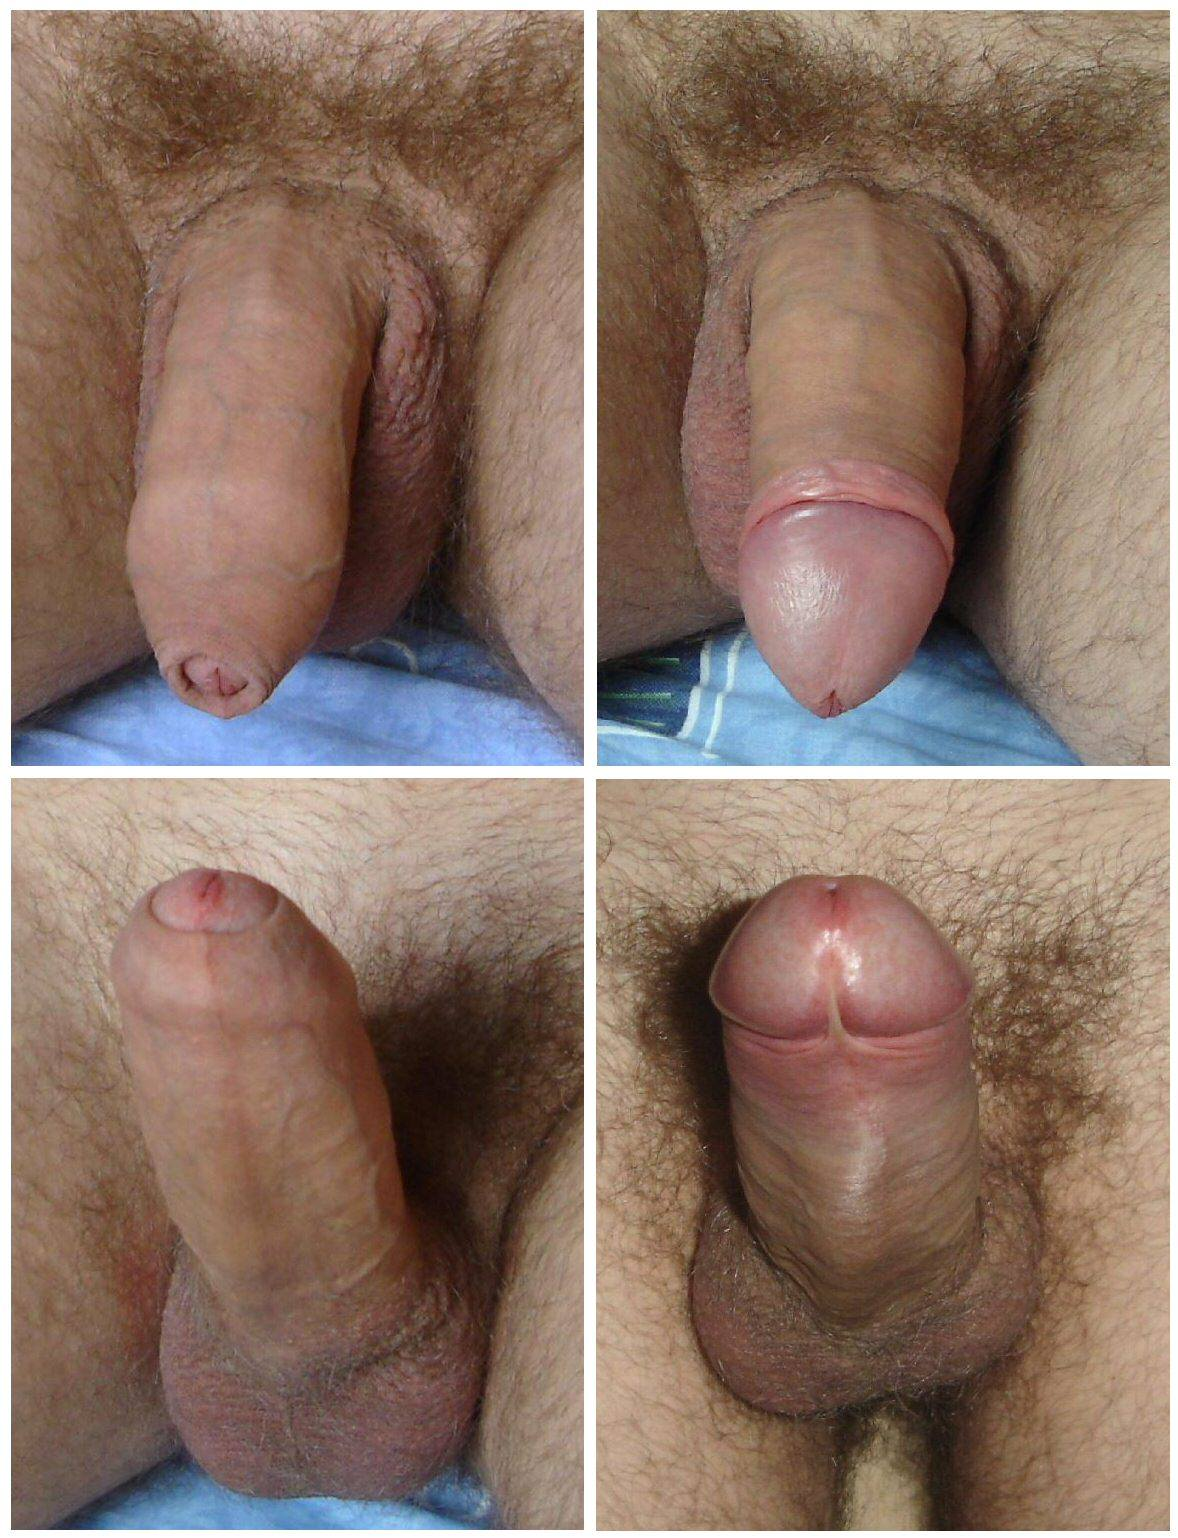 Uncircumcised cock gets blown hard by skinny asian hoe rosemary